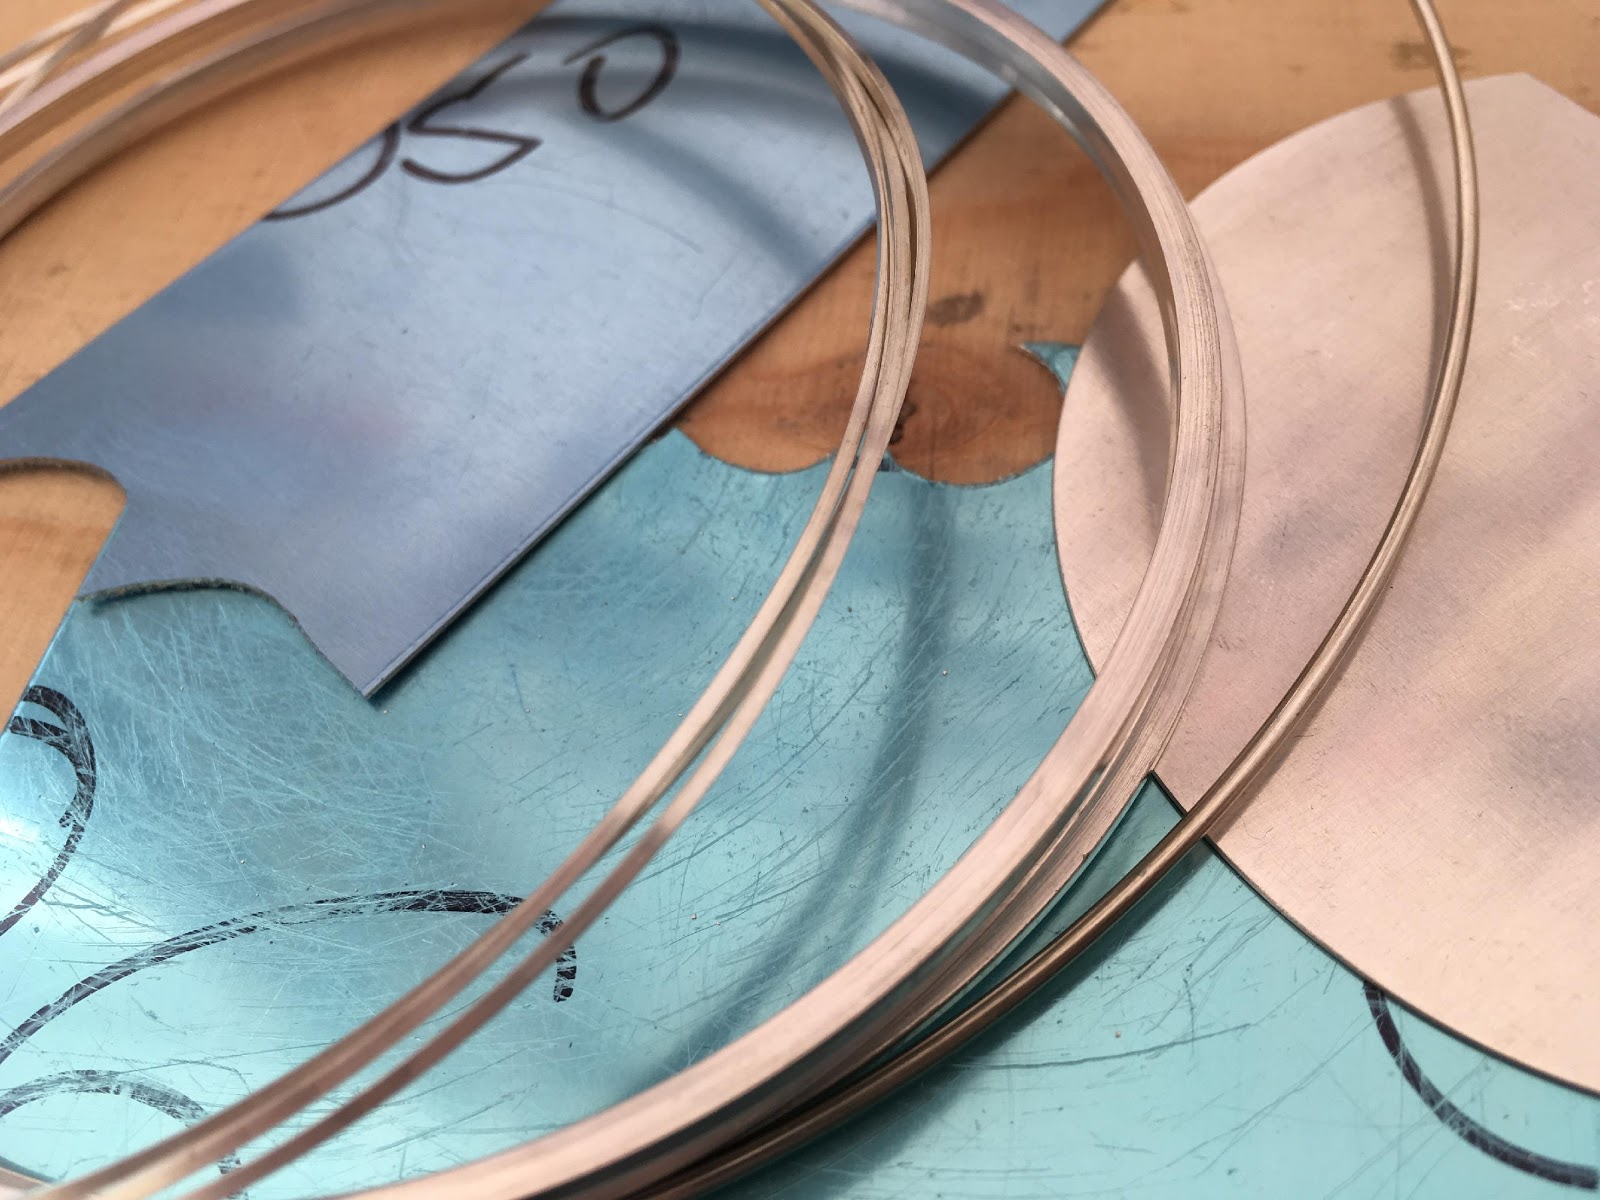 Sheet metal and wire, before being crafted into jewellery by Megan Collins Jewellery